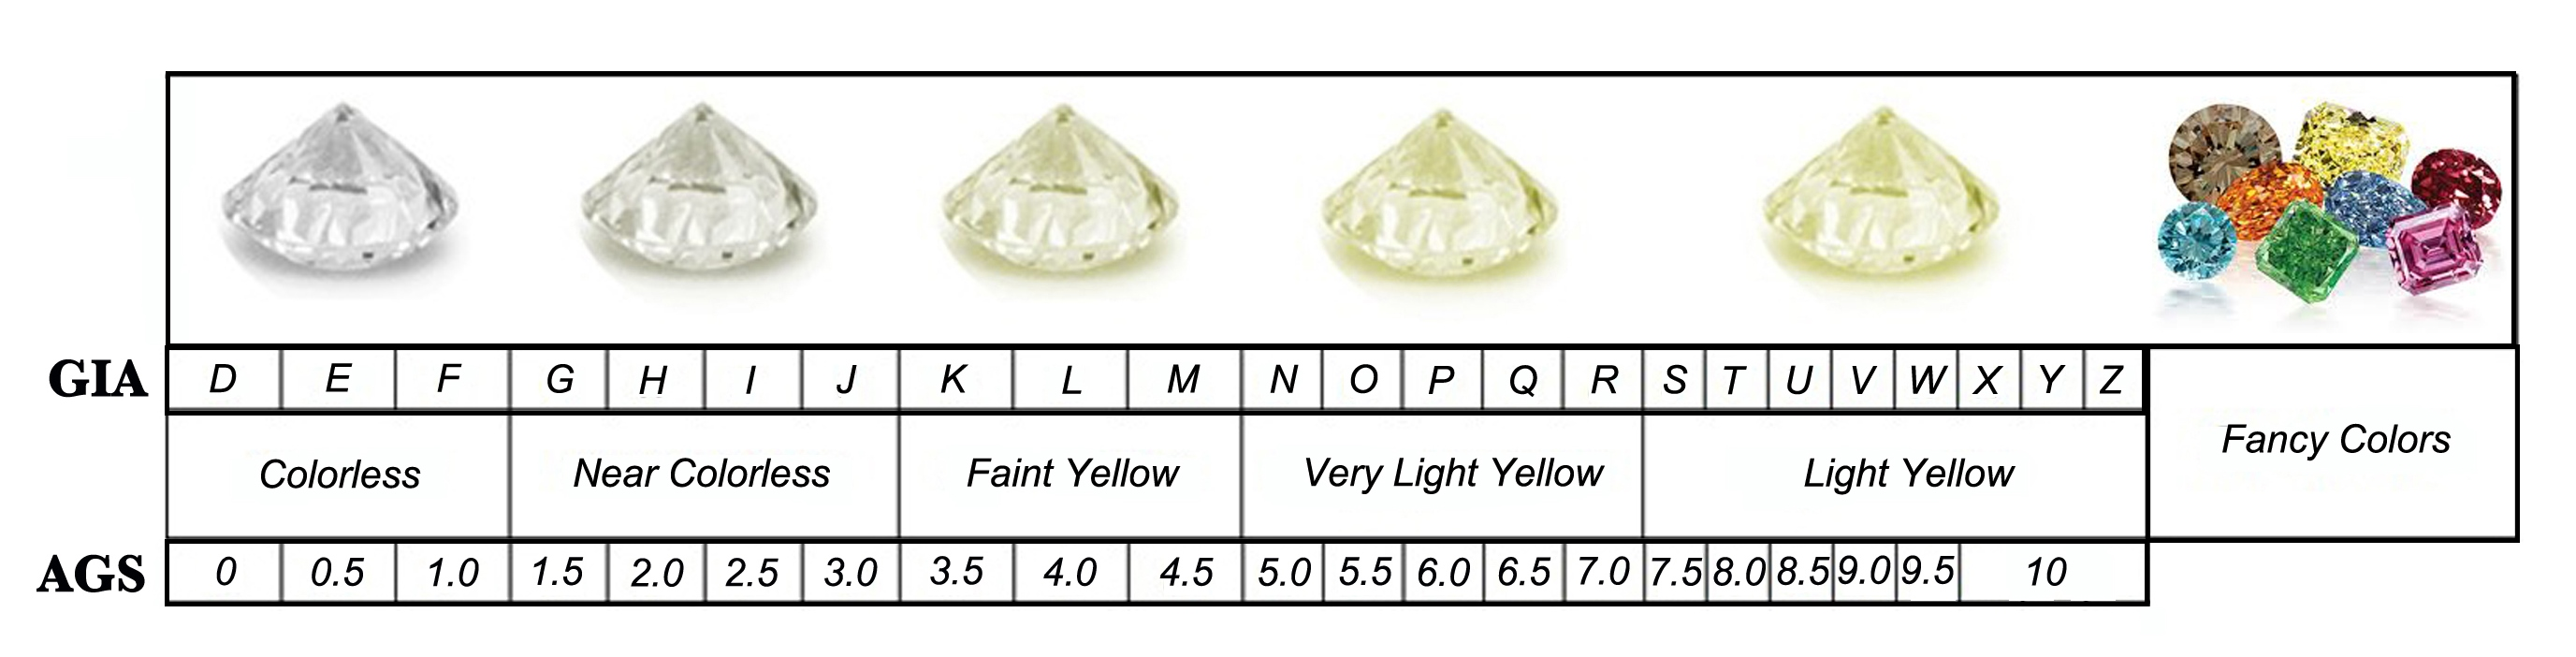 resources vermont grading diamond client lab gem criteria diamonds